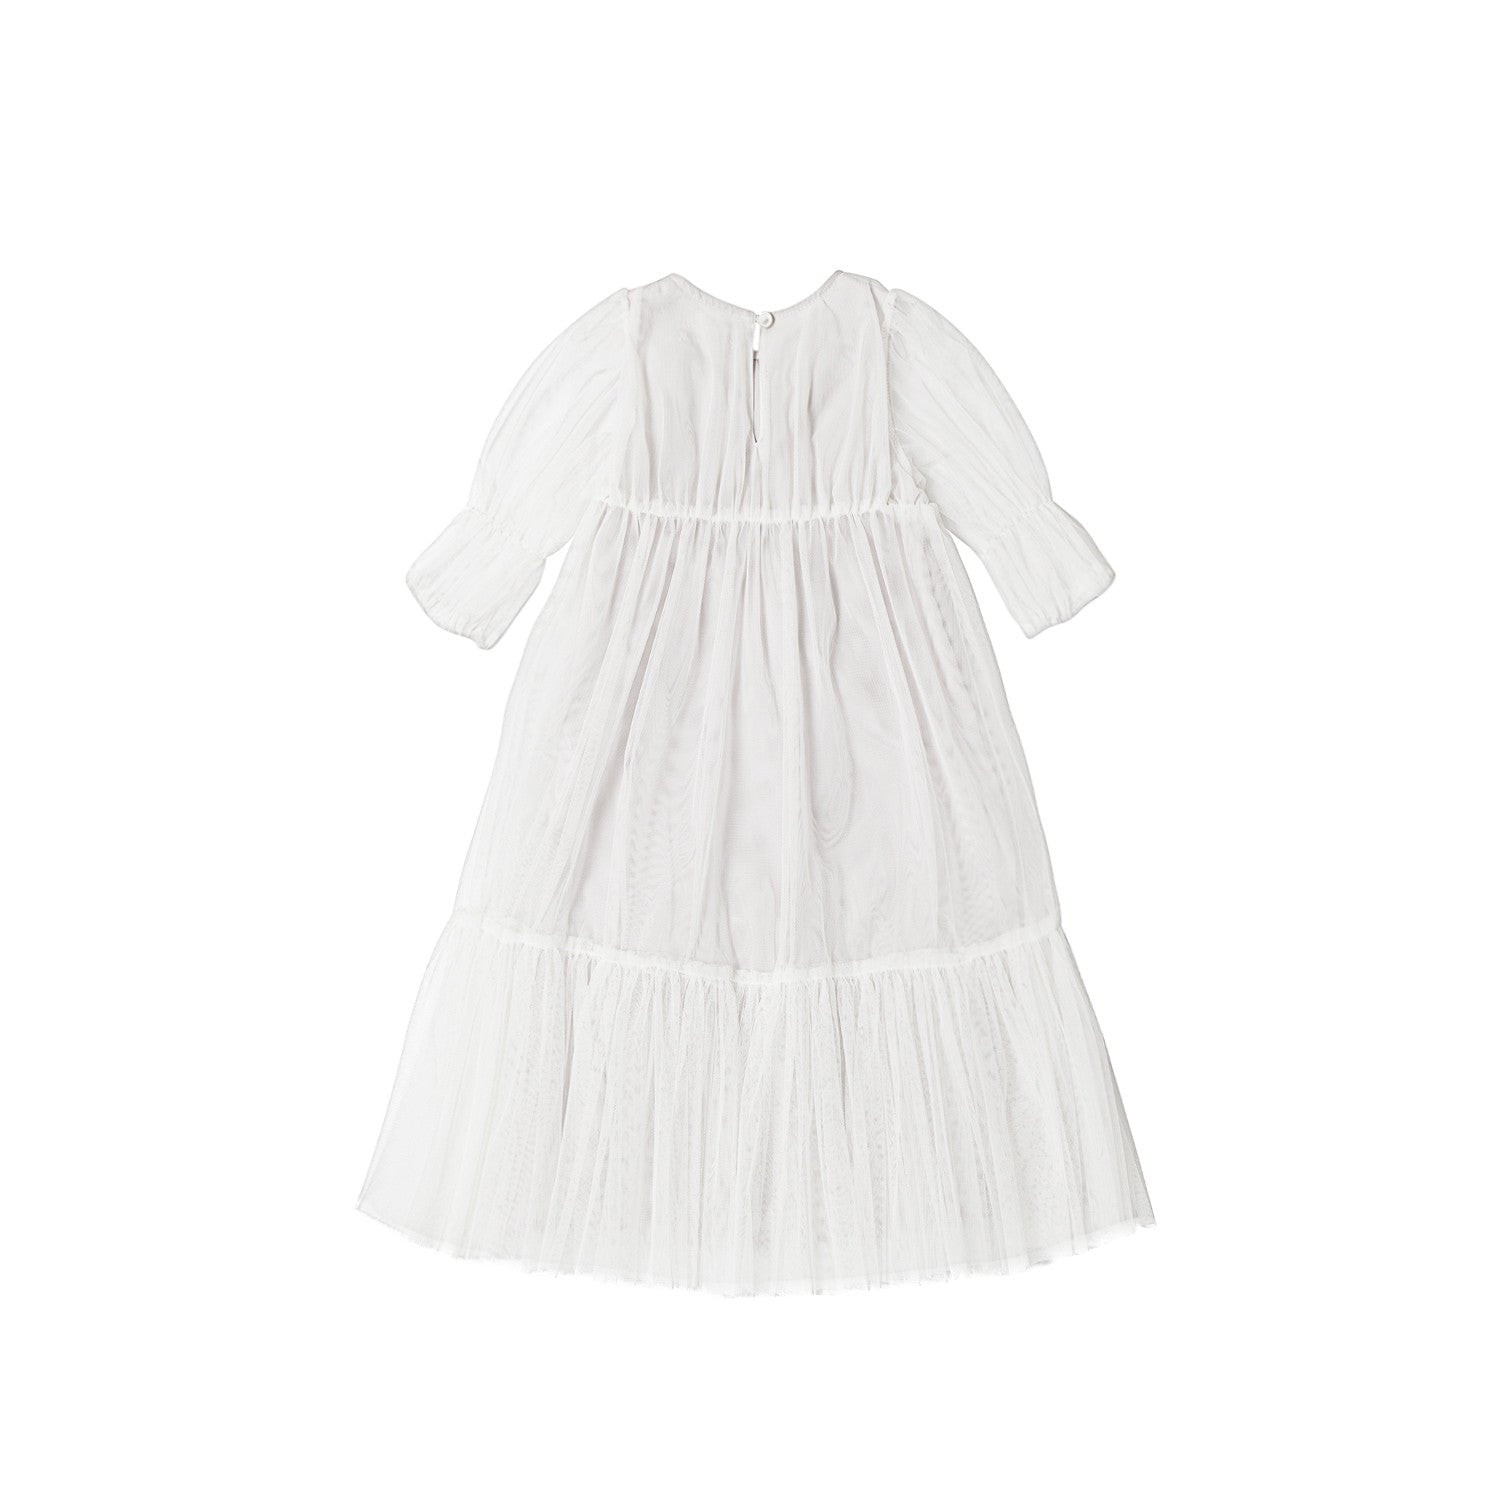 Bene Bene Mesh Cream Sausage Dress - Ladida